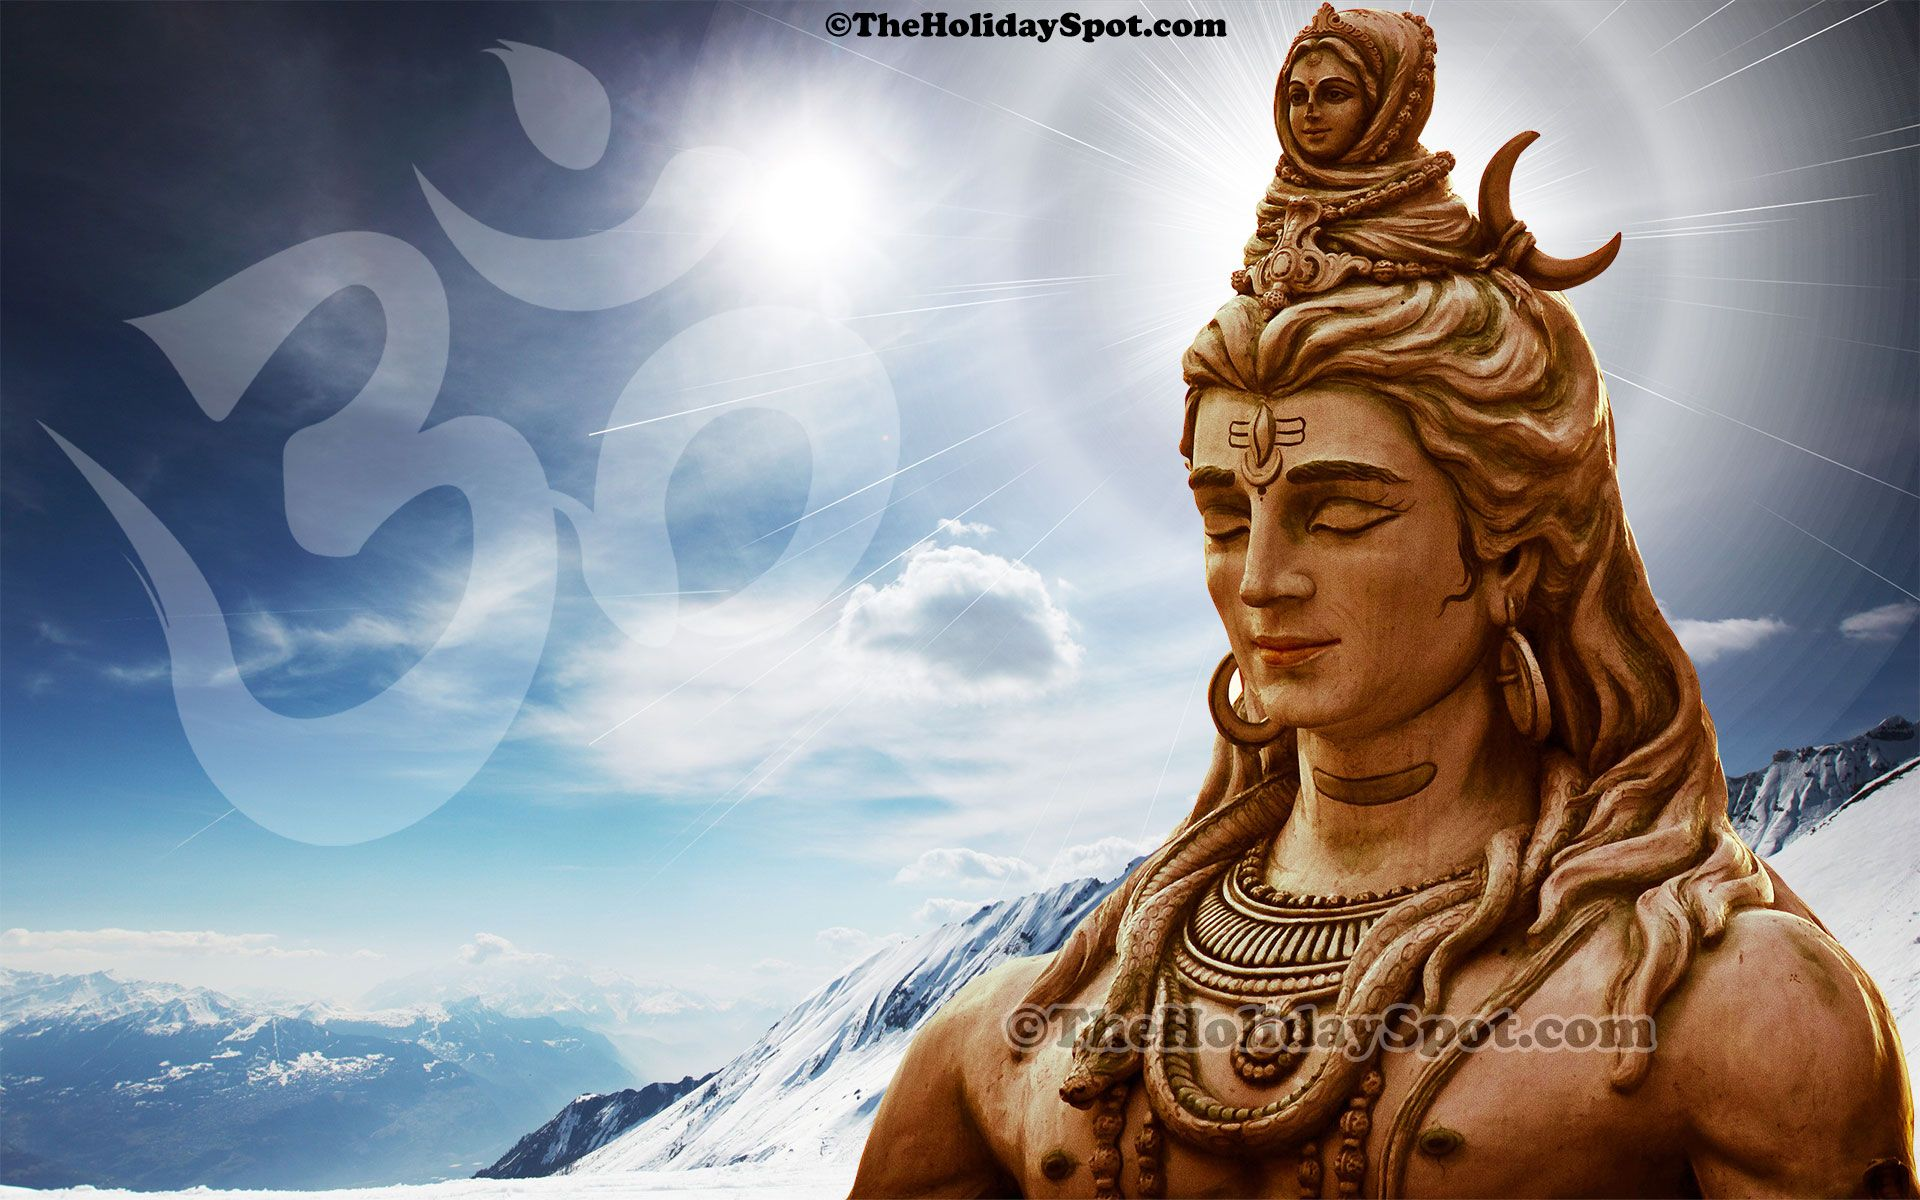 Lord Shiva Hd Wallpapers For Laptop Of Lord Shiva Shiva The